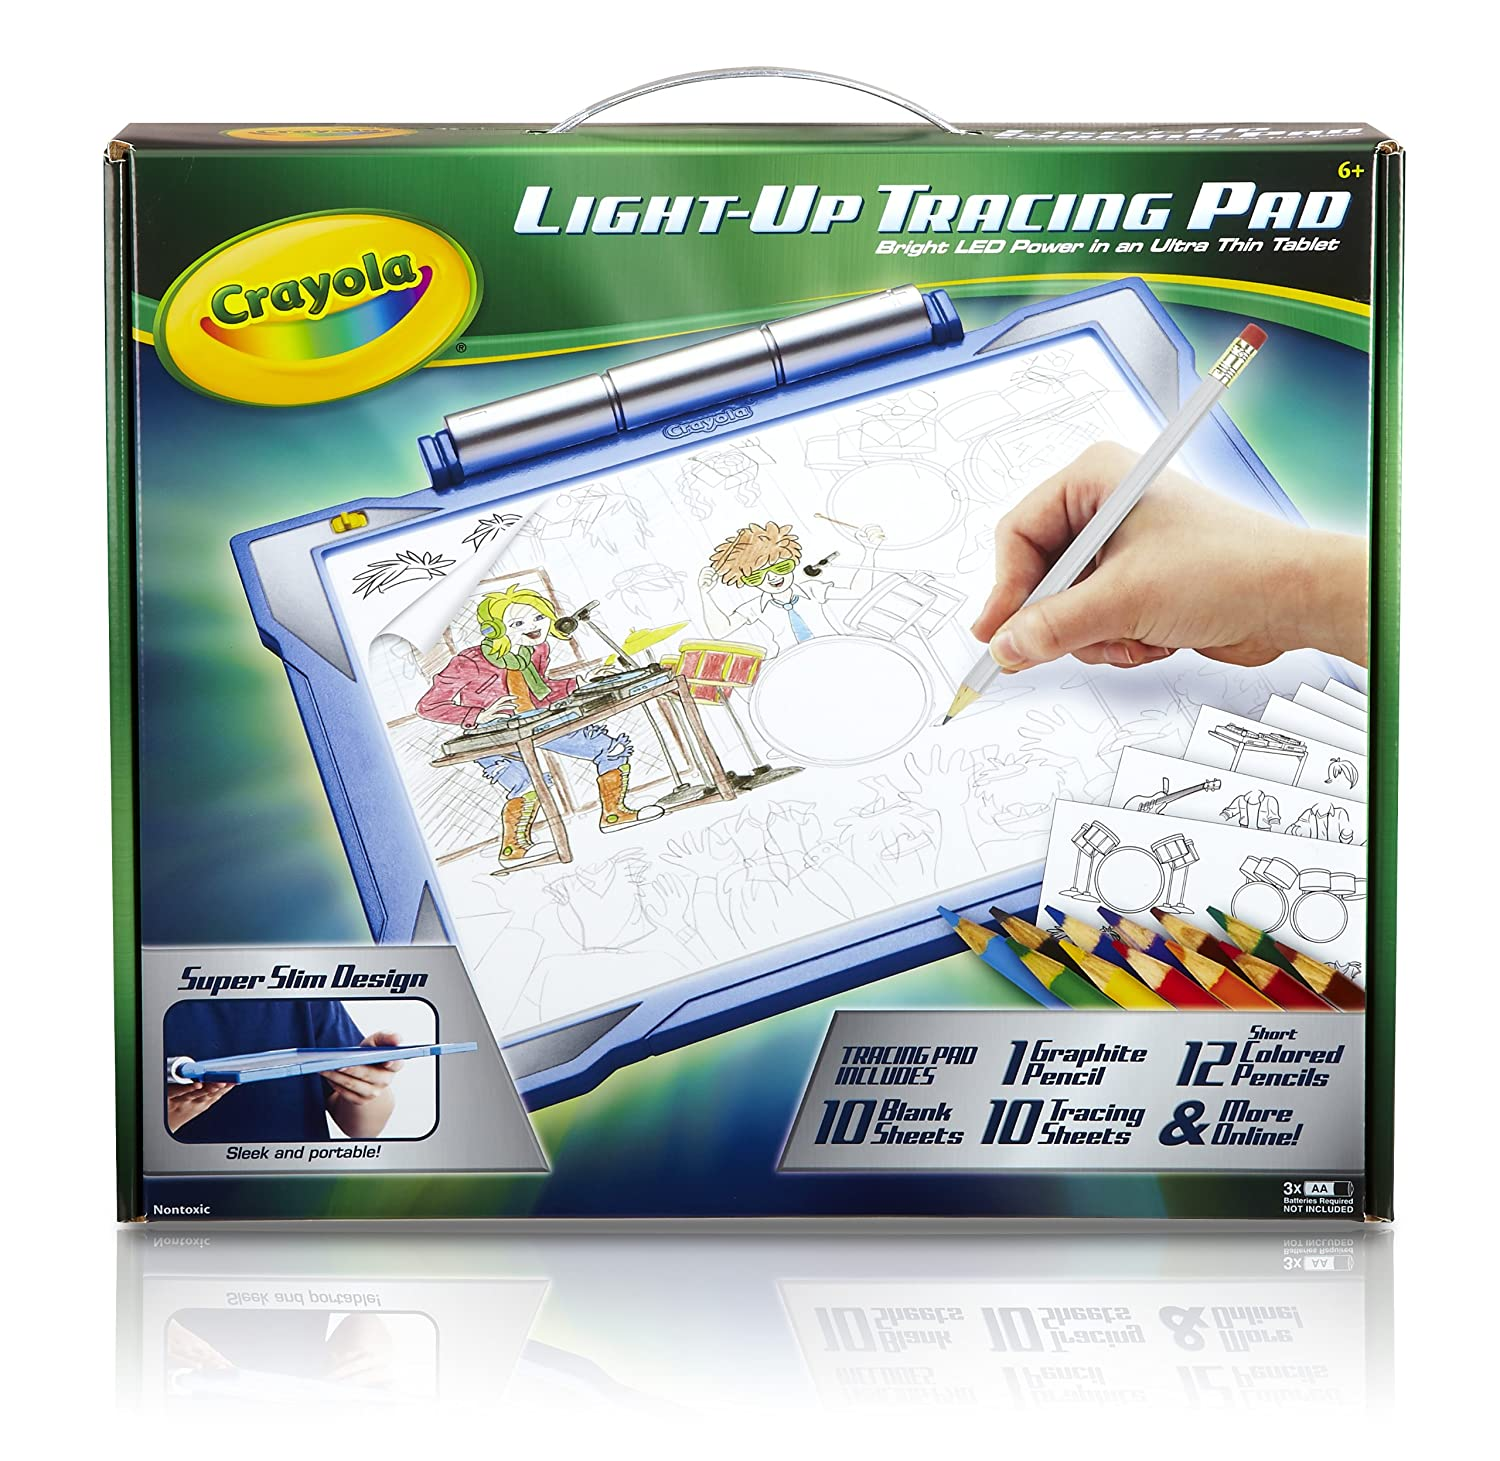 image of a Crayola Loght-up tracing pad for kids